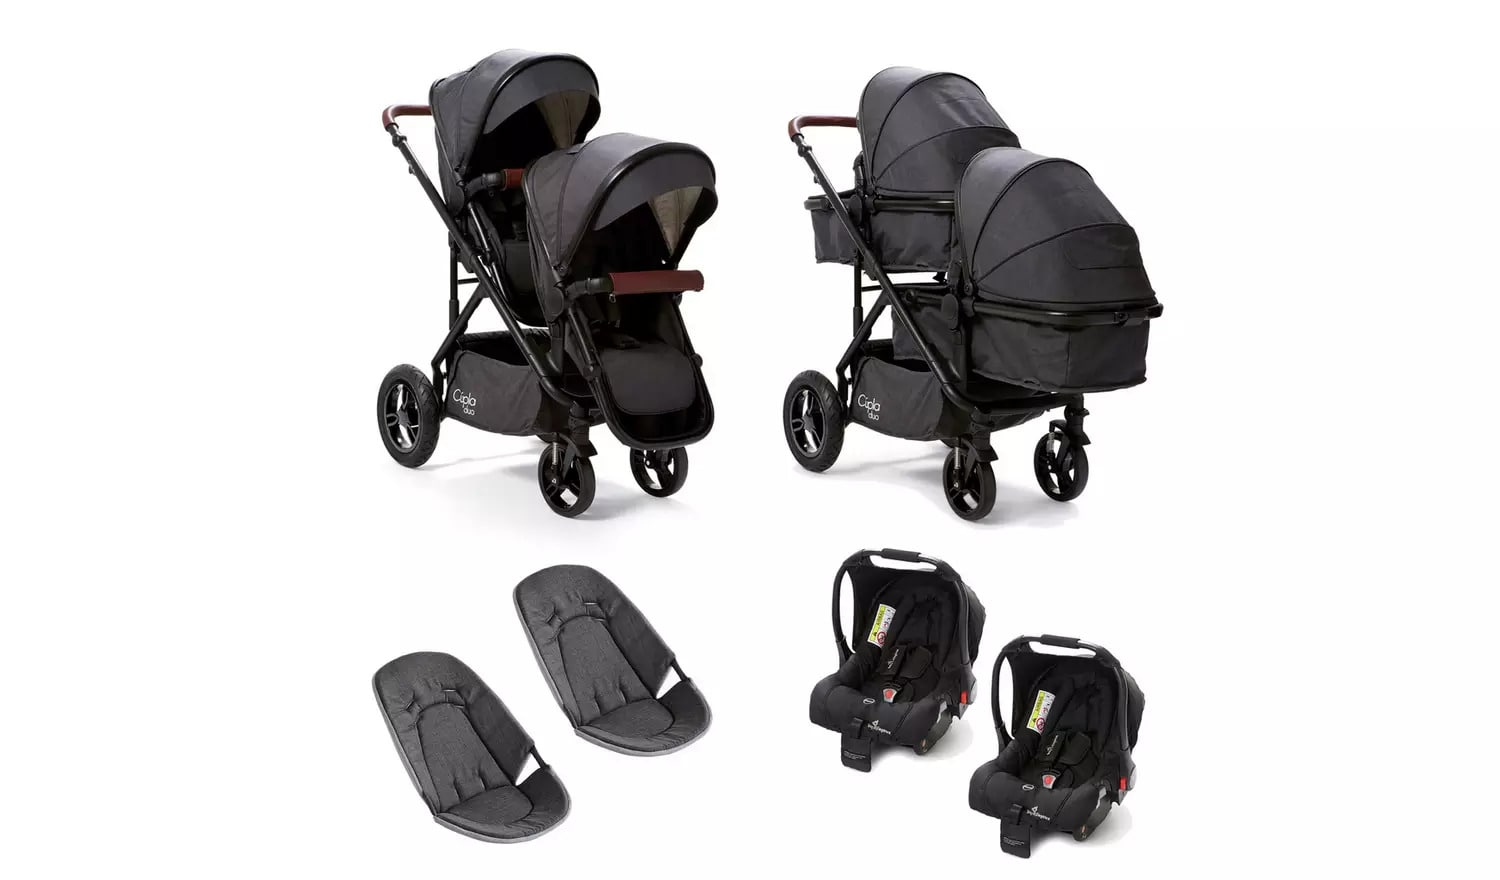 Adaptable and flexible plain black pushchair for twins.